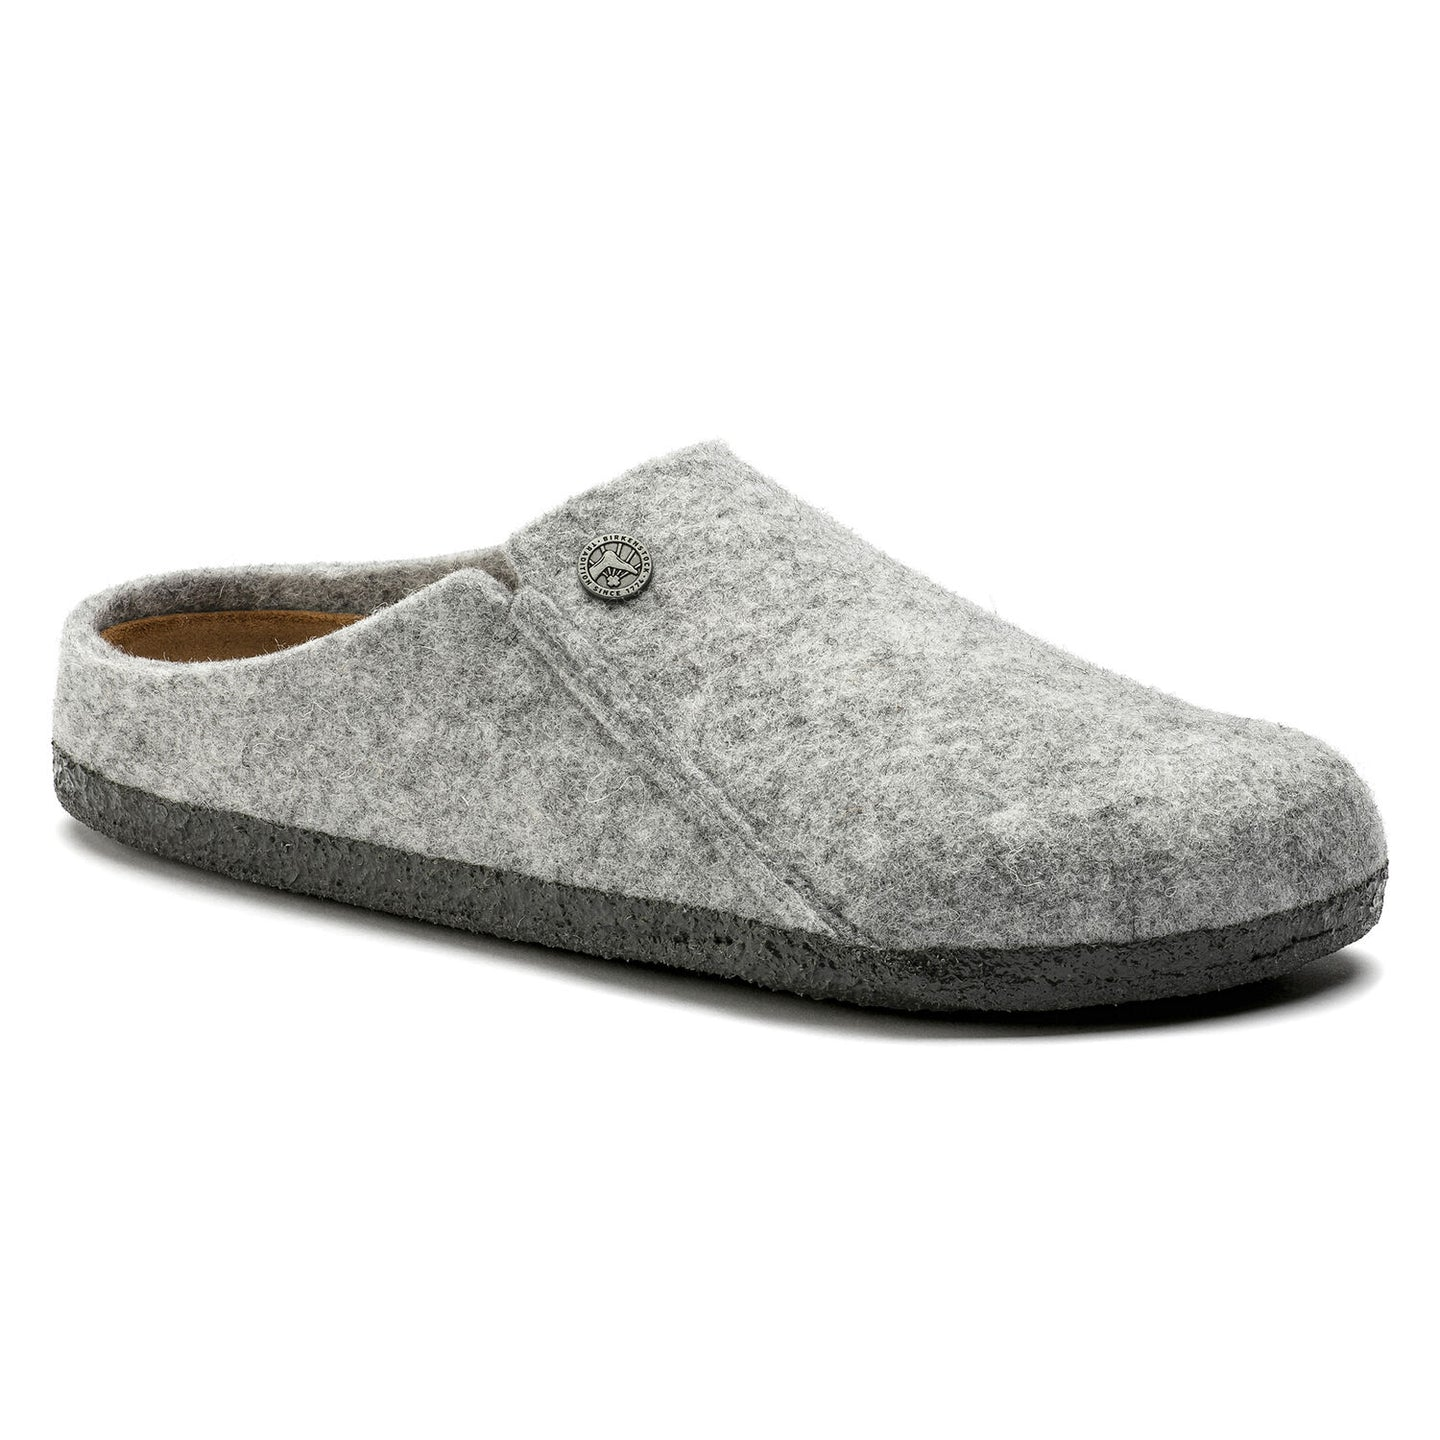 Zermatt Wool Felt in Light Grey - Joe's Boots - Kingston